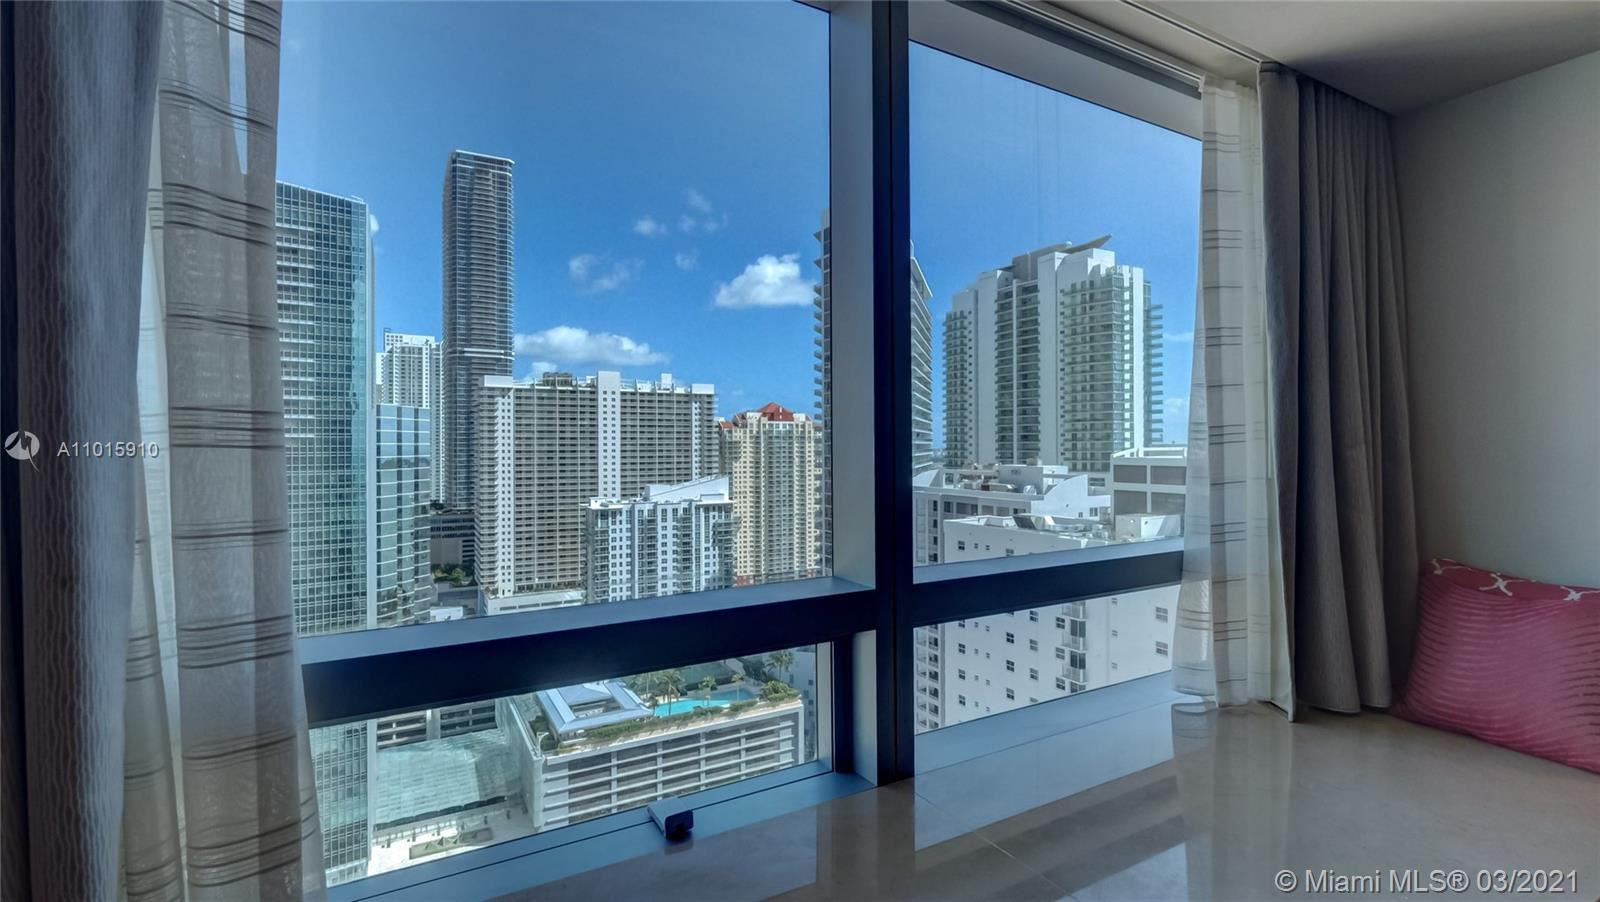 1435 Brickell Ave #3010, Miami, FL 33131 - #: A11015910